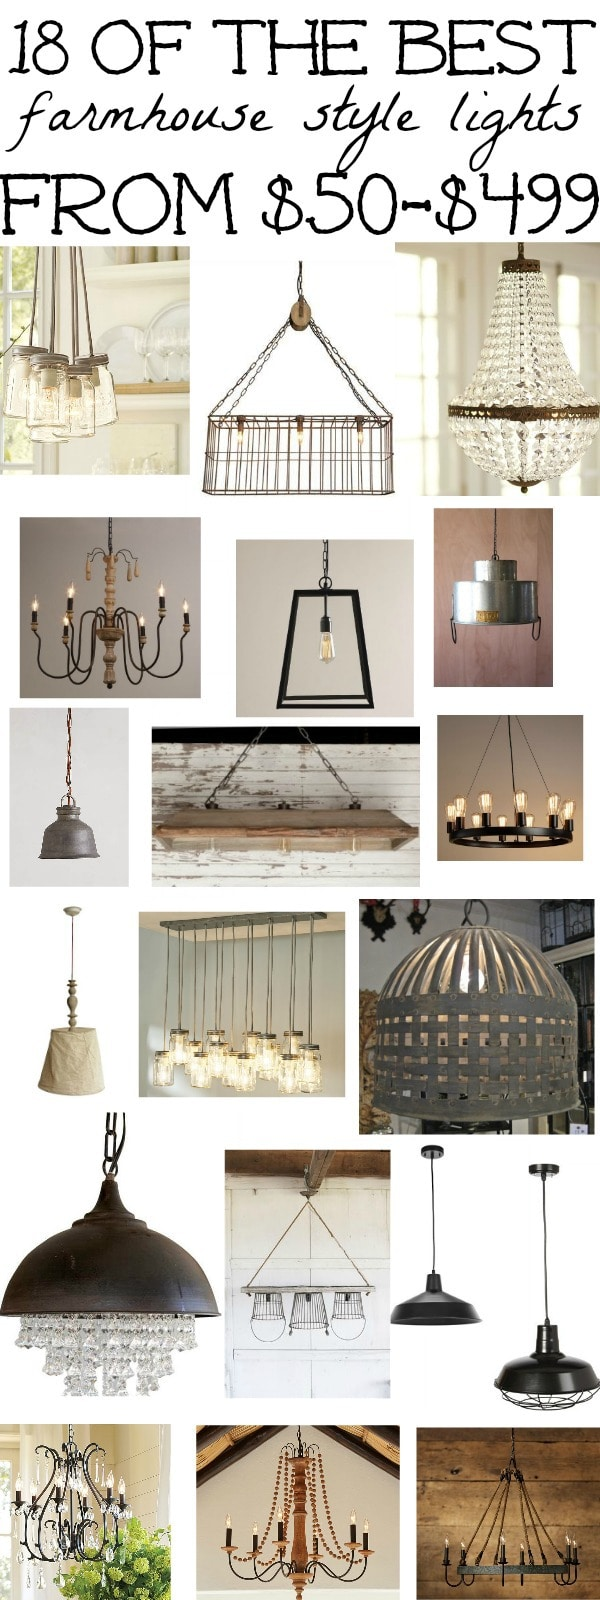 18 Of The Best Farmhouse Light Fixtures